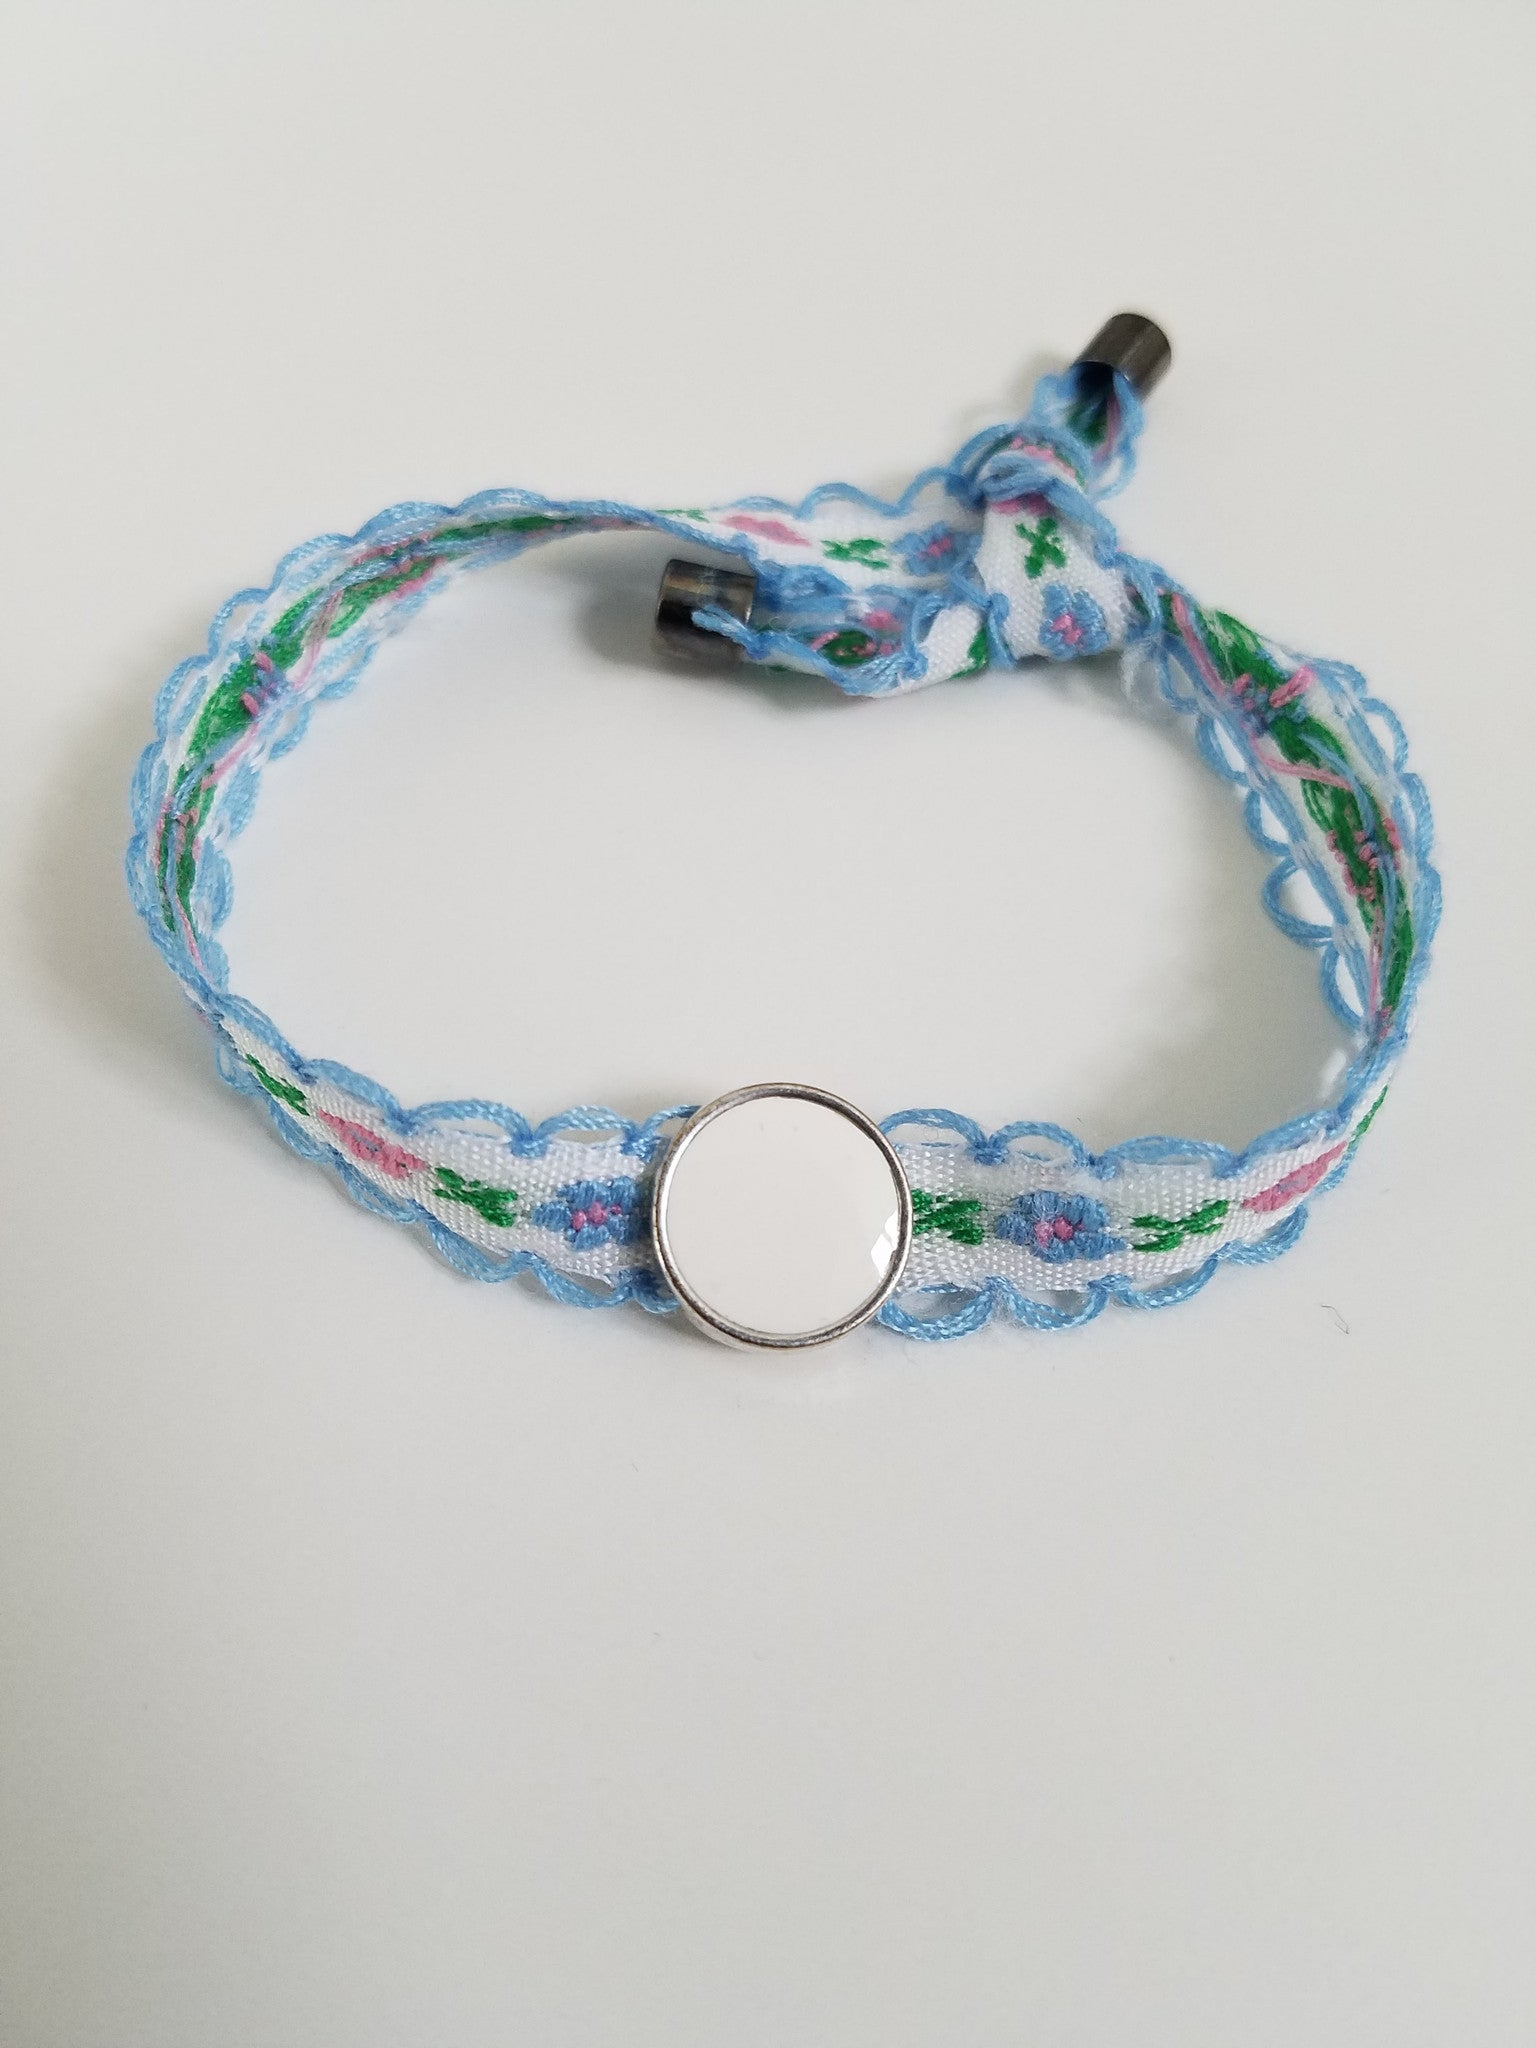 Embroidery Floral Bracelet - Floral with White Charm